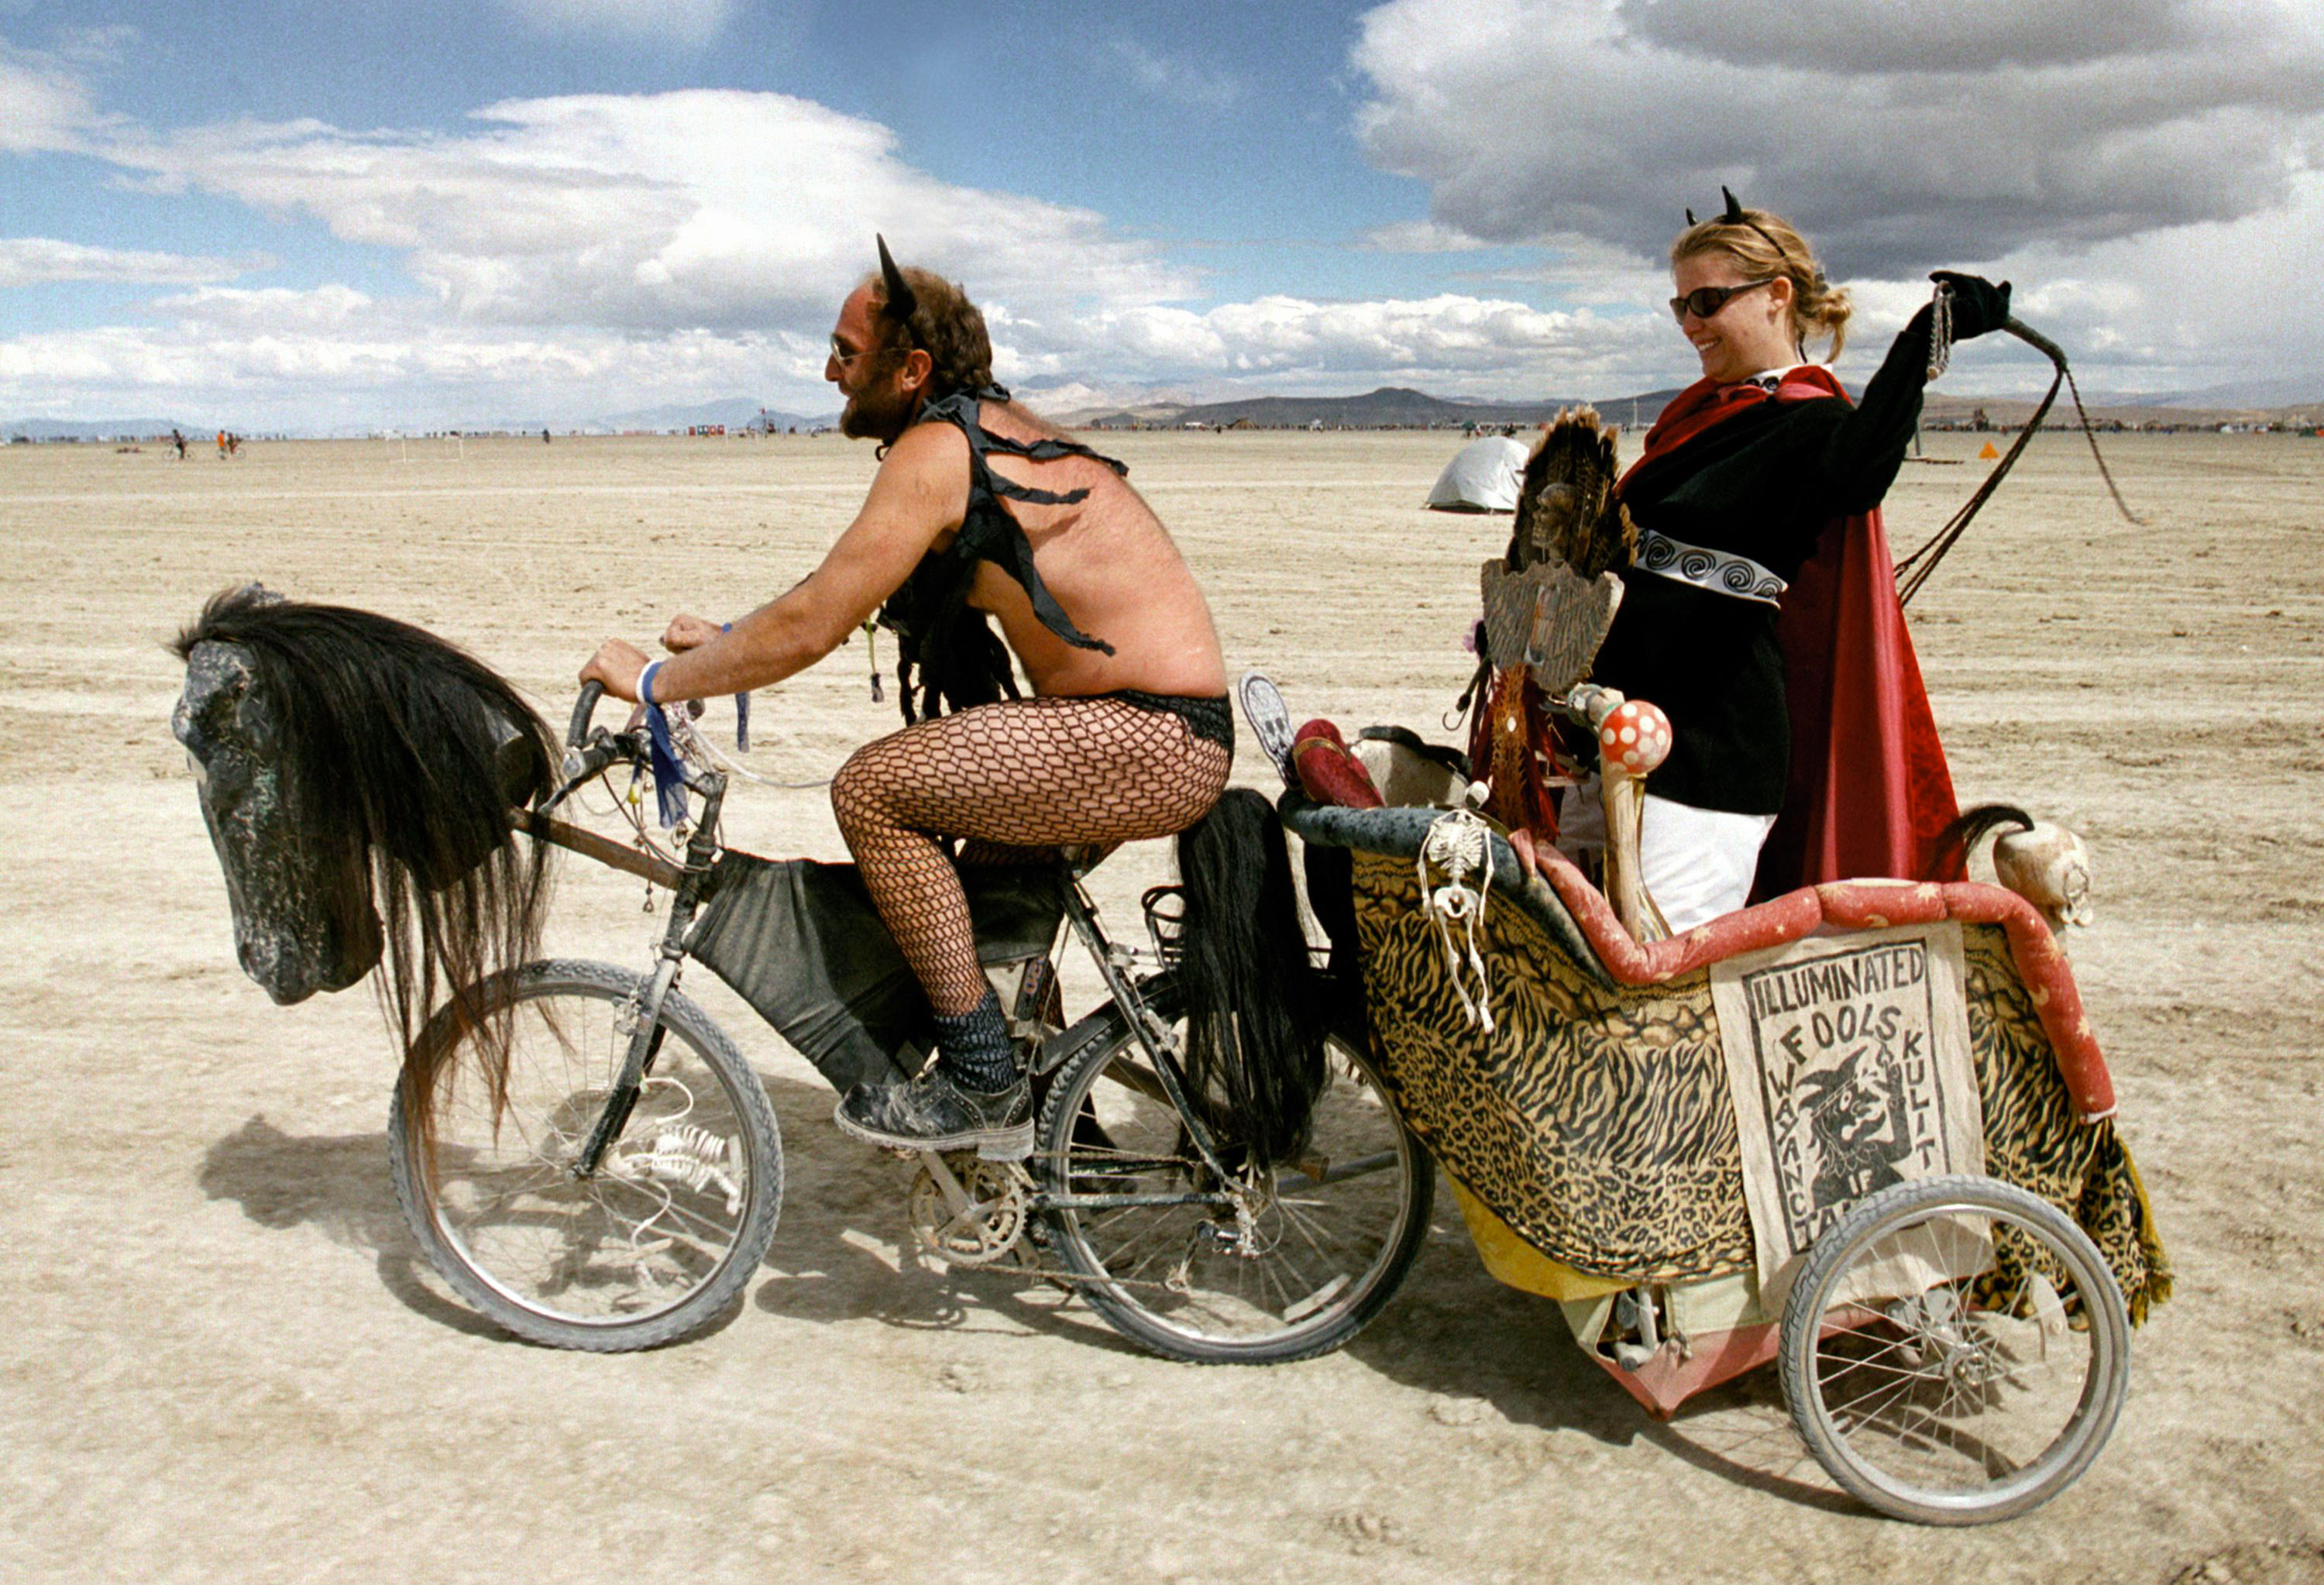 GettyImages 72307982 People Did Some Weird Sh*t At Burning Man Festival This Year